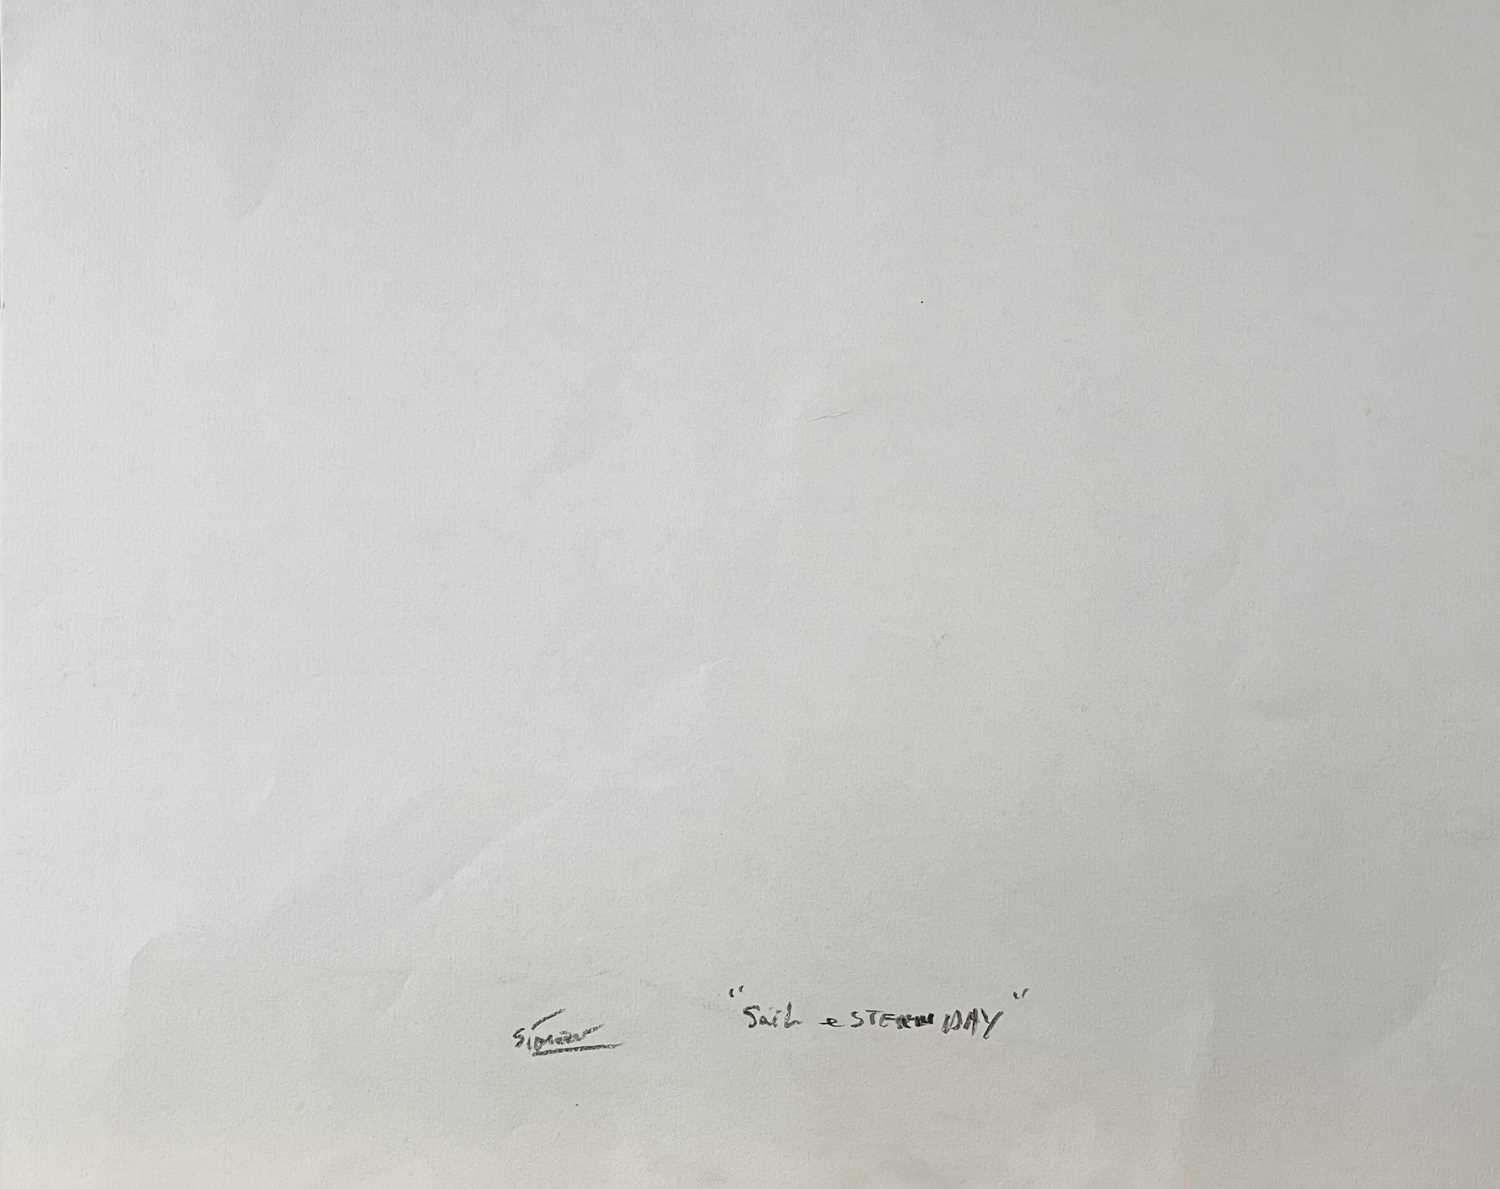 Simeon STAFFORD (1956)Sail and Steam Day Pencil drawing on paper Signed Further signed and inscribed - Image 2 of 3